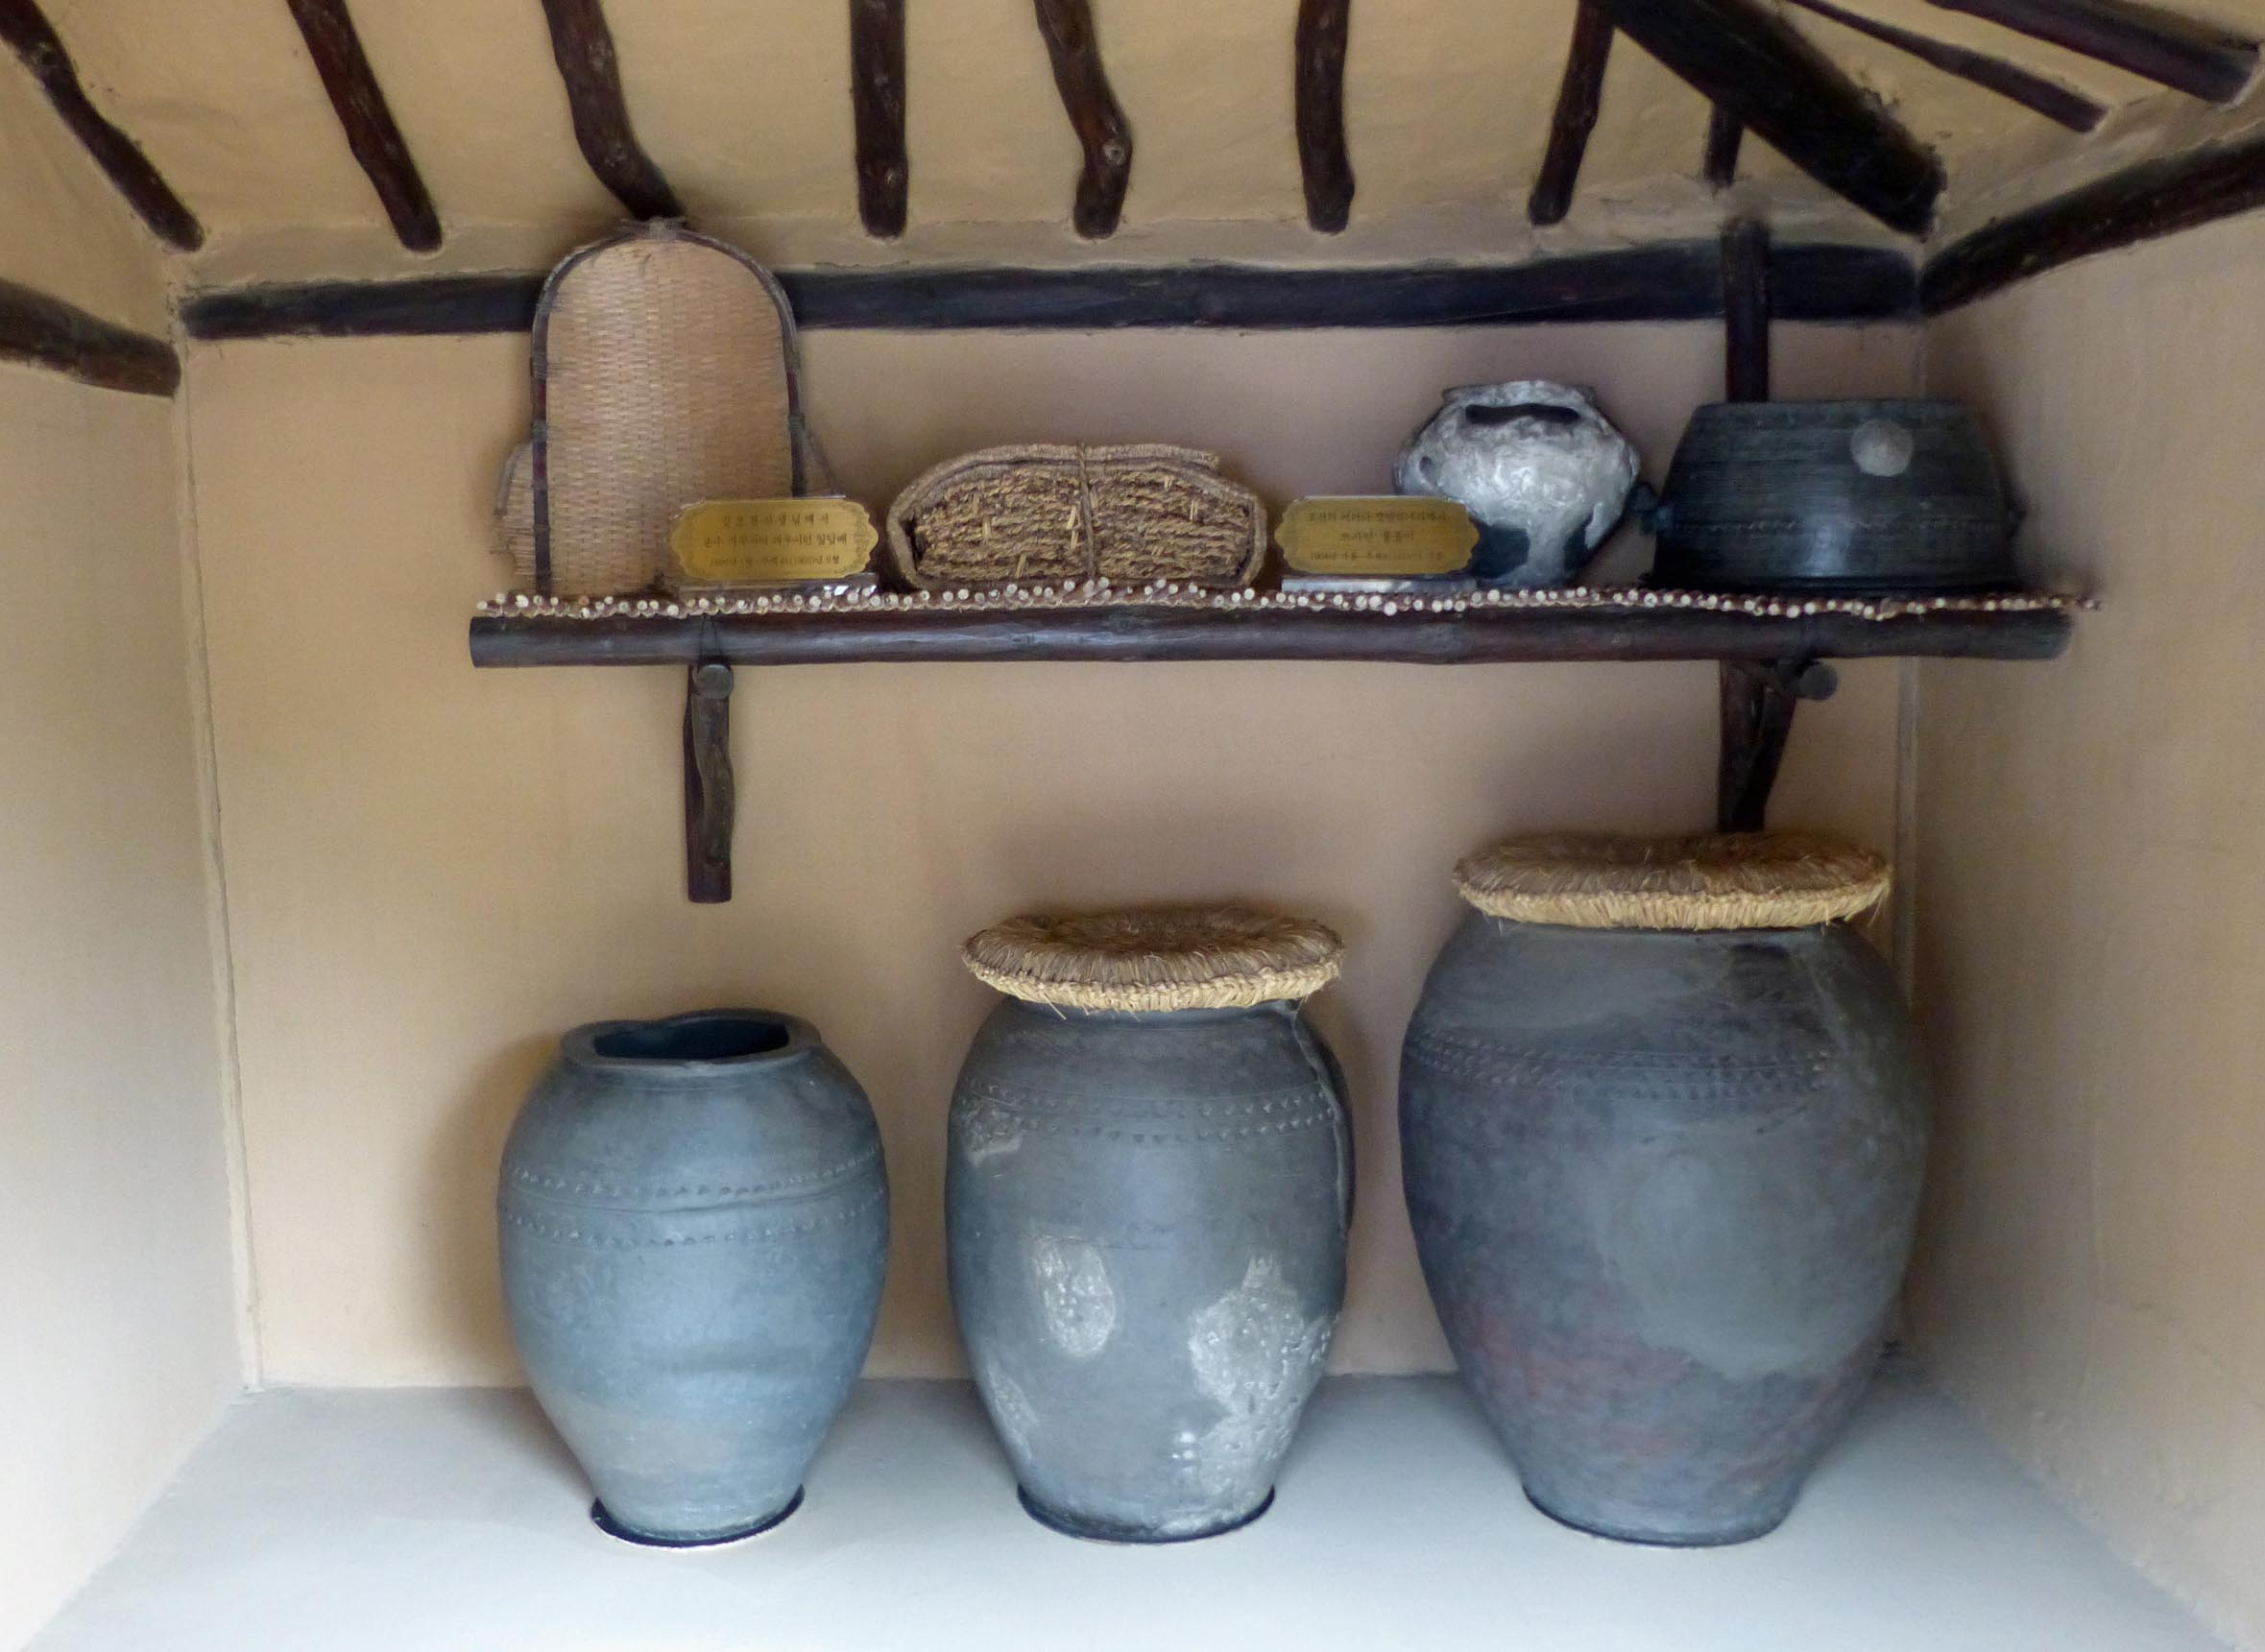 Large pots on the floor with shelf above